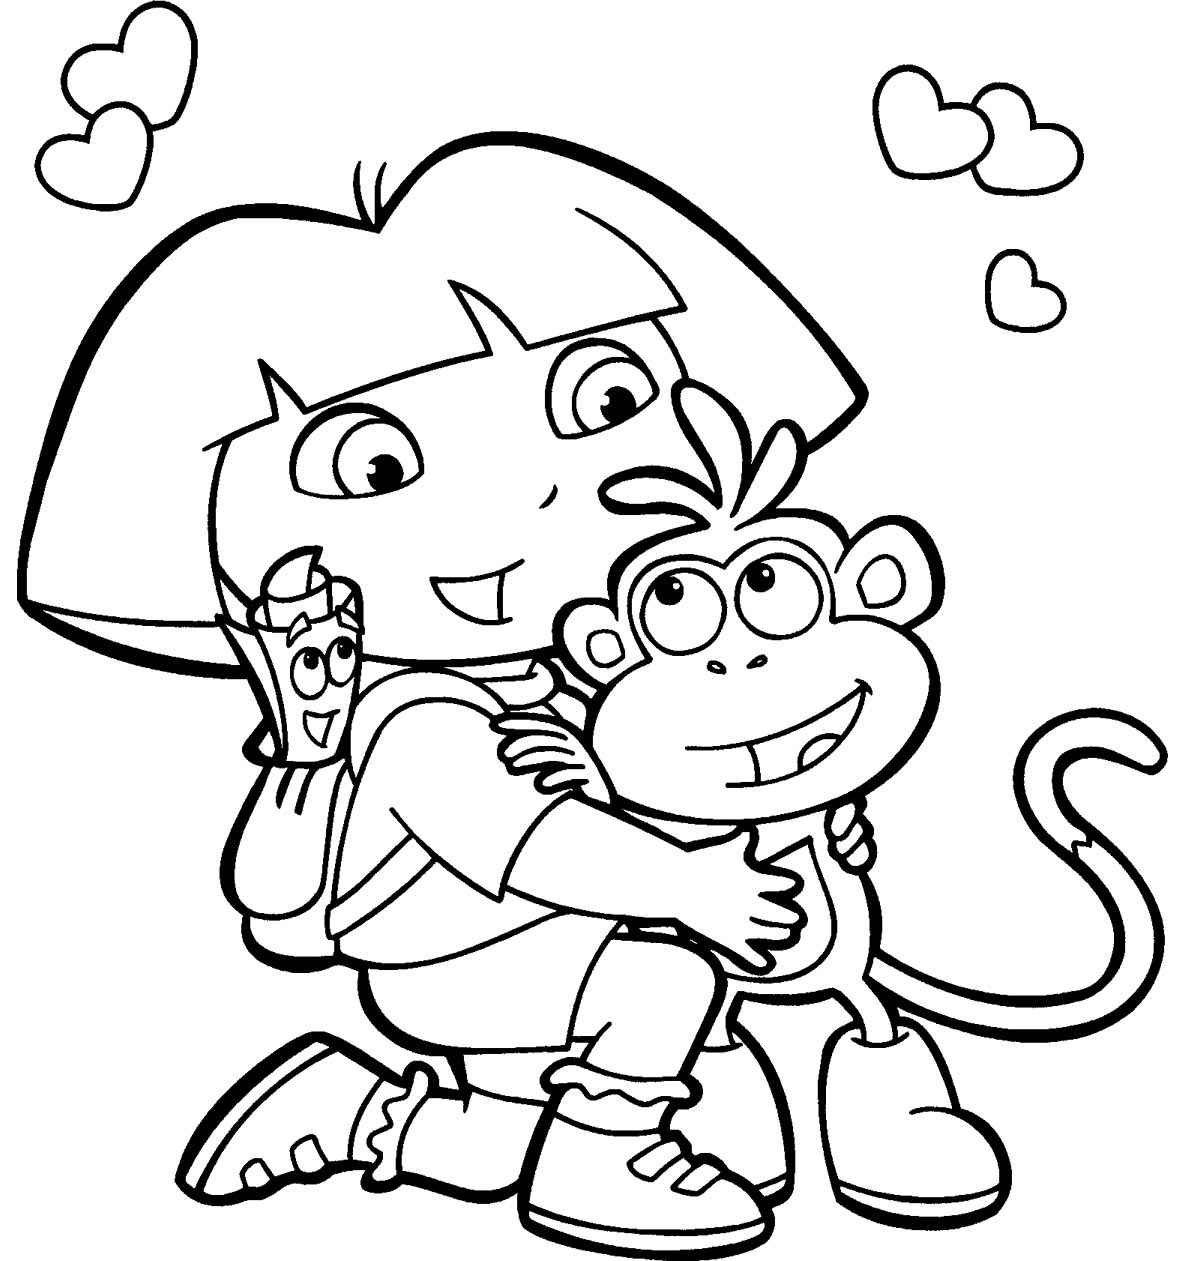 1200x1261 The Explorer Christmas Printable Coloring Pages Coloring Pages